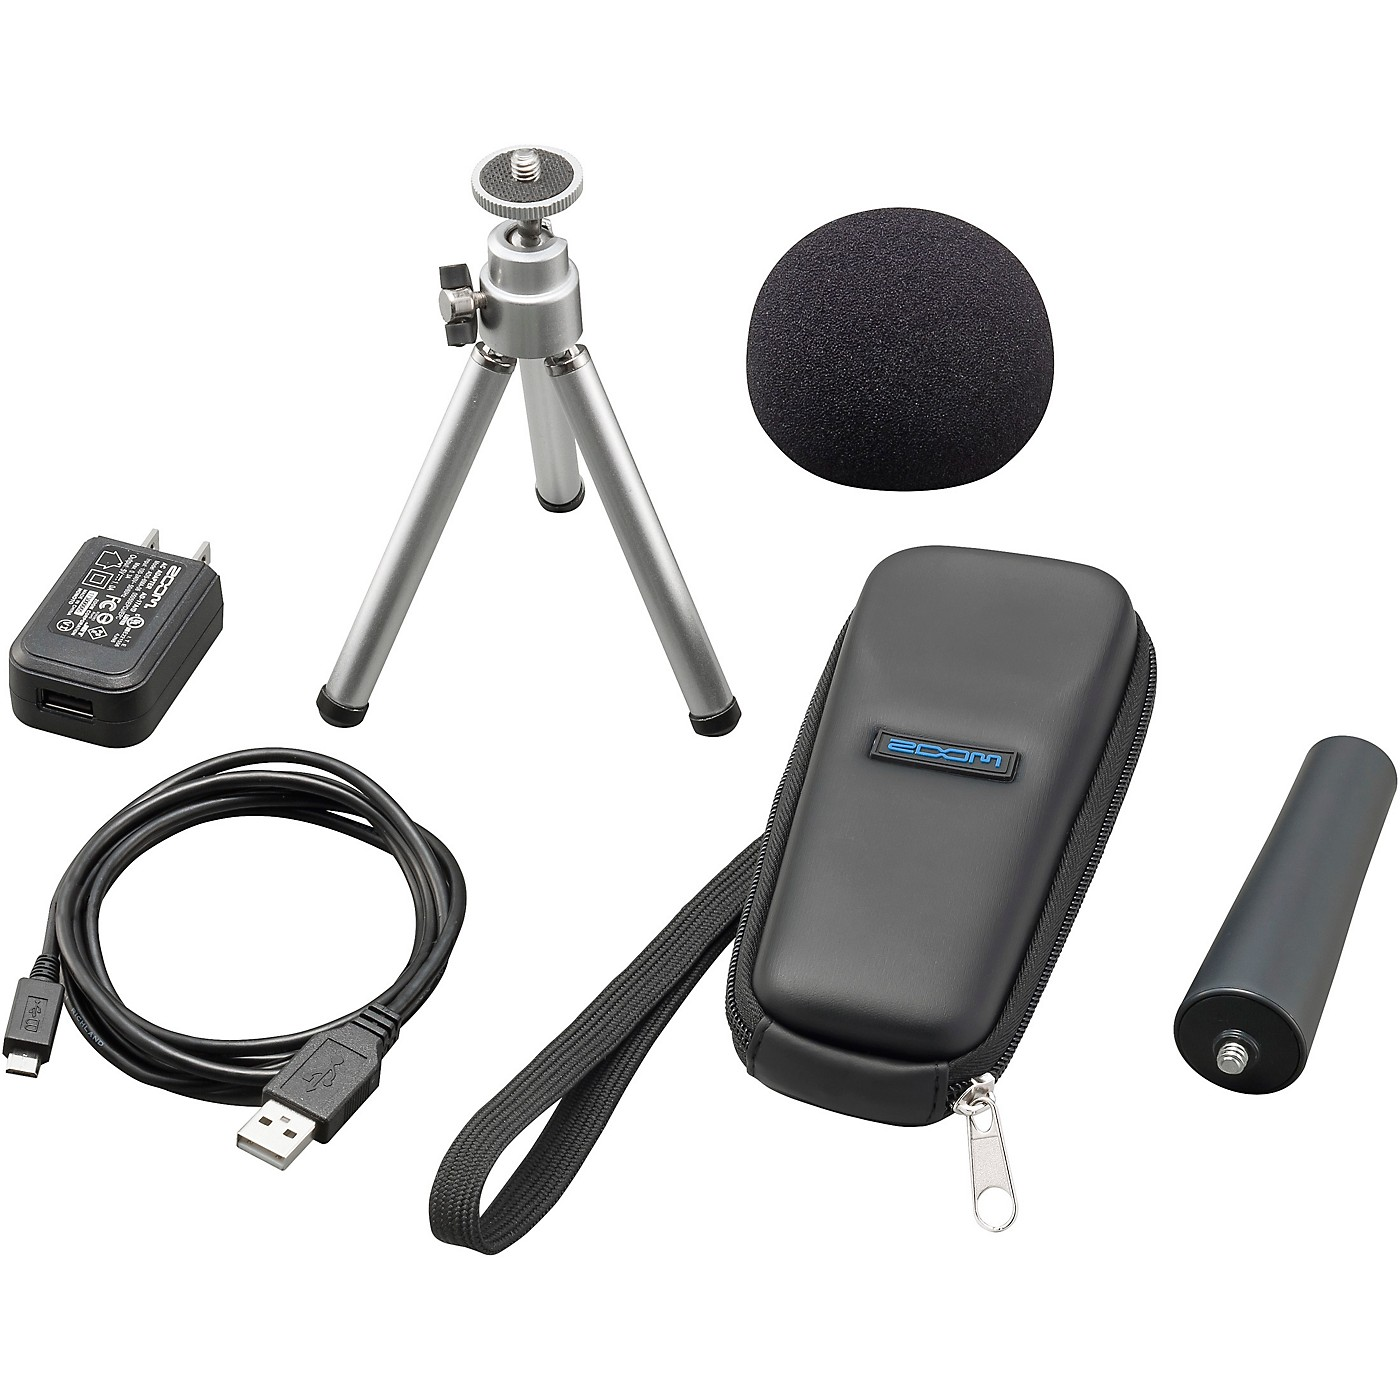 Zoom APH-1n Accessory Pack for H1n Handy Recorder thumbnail